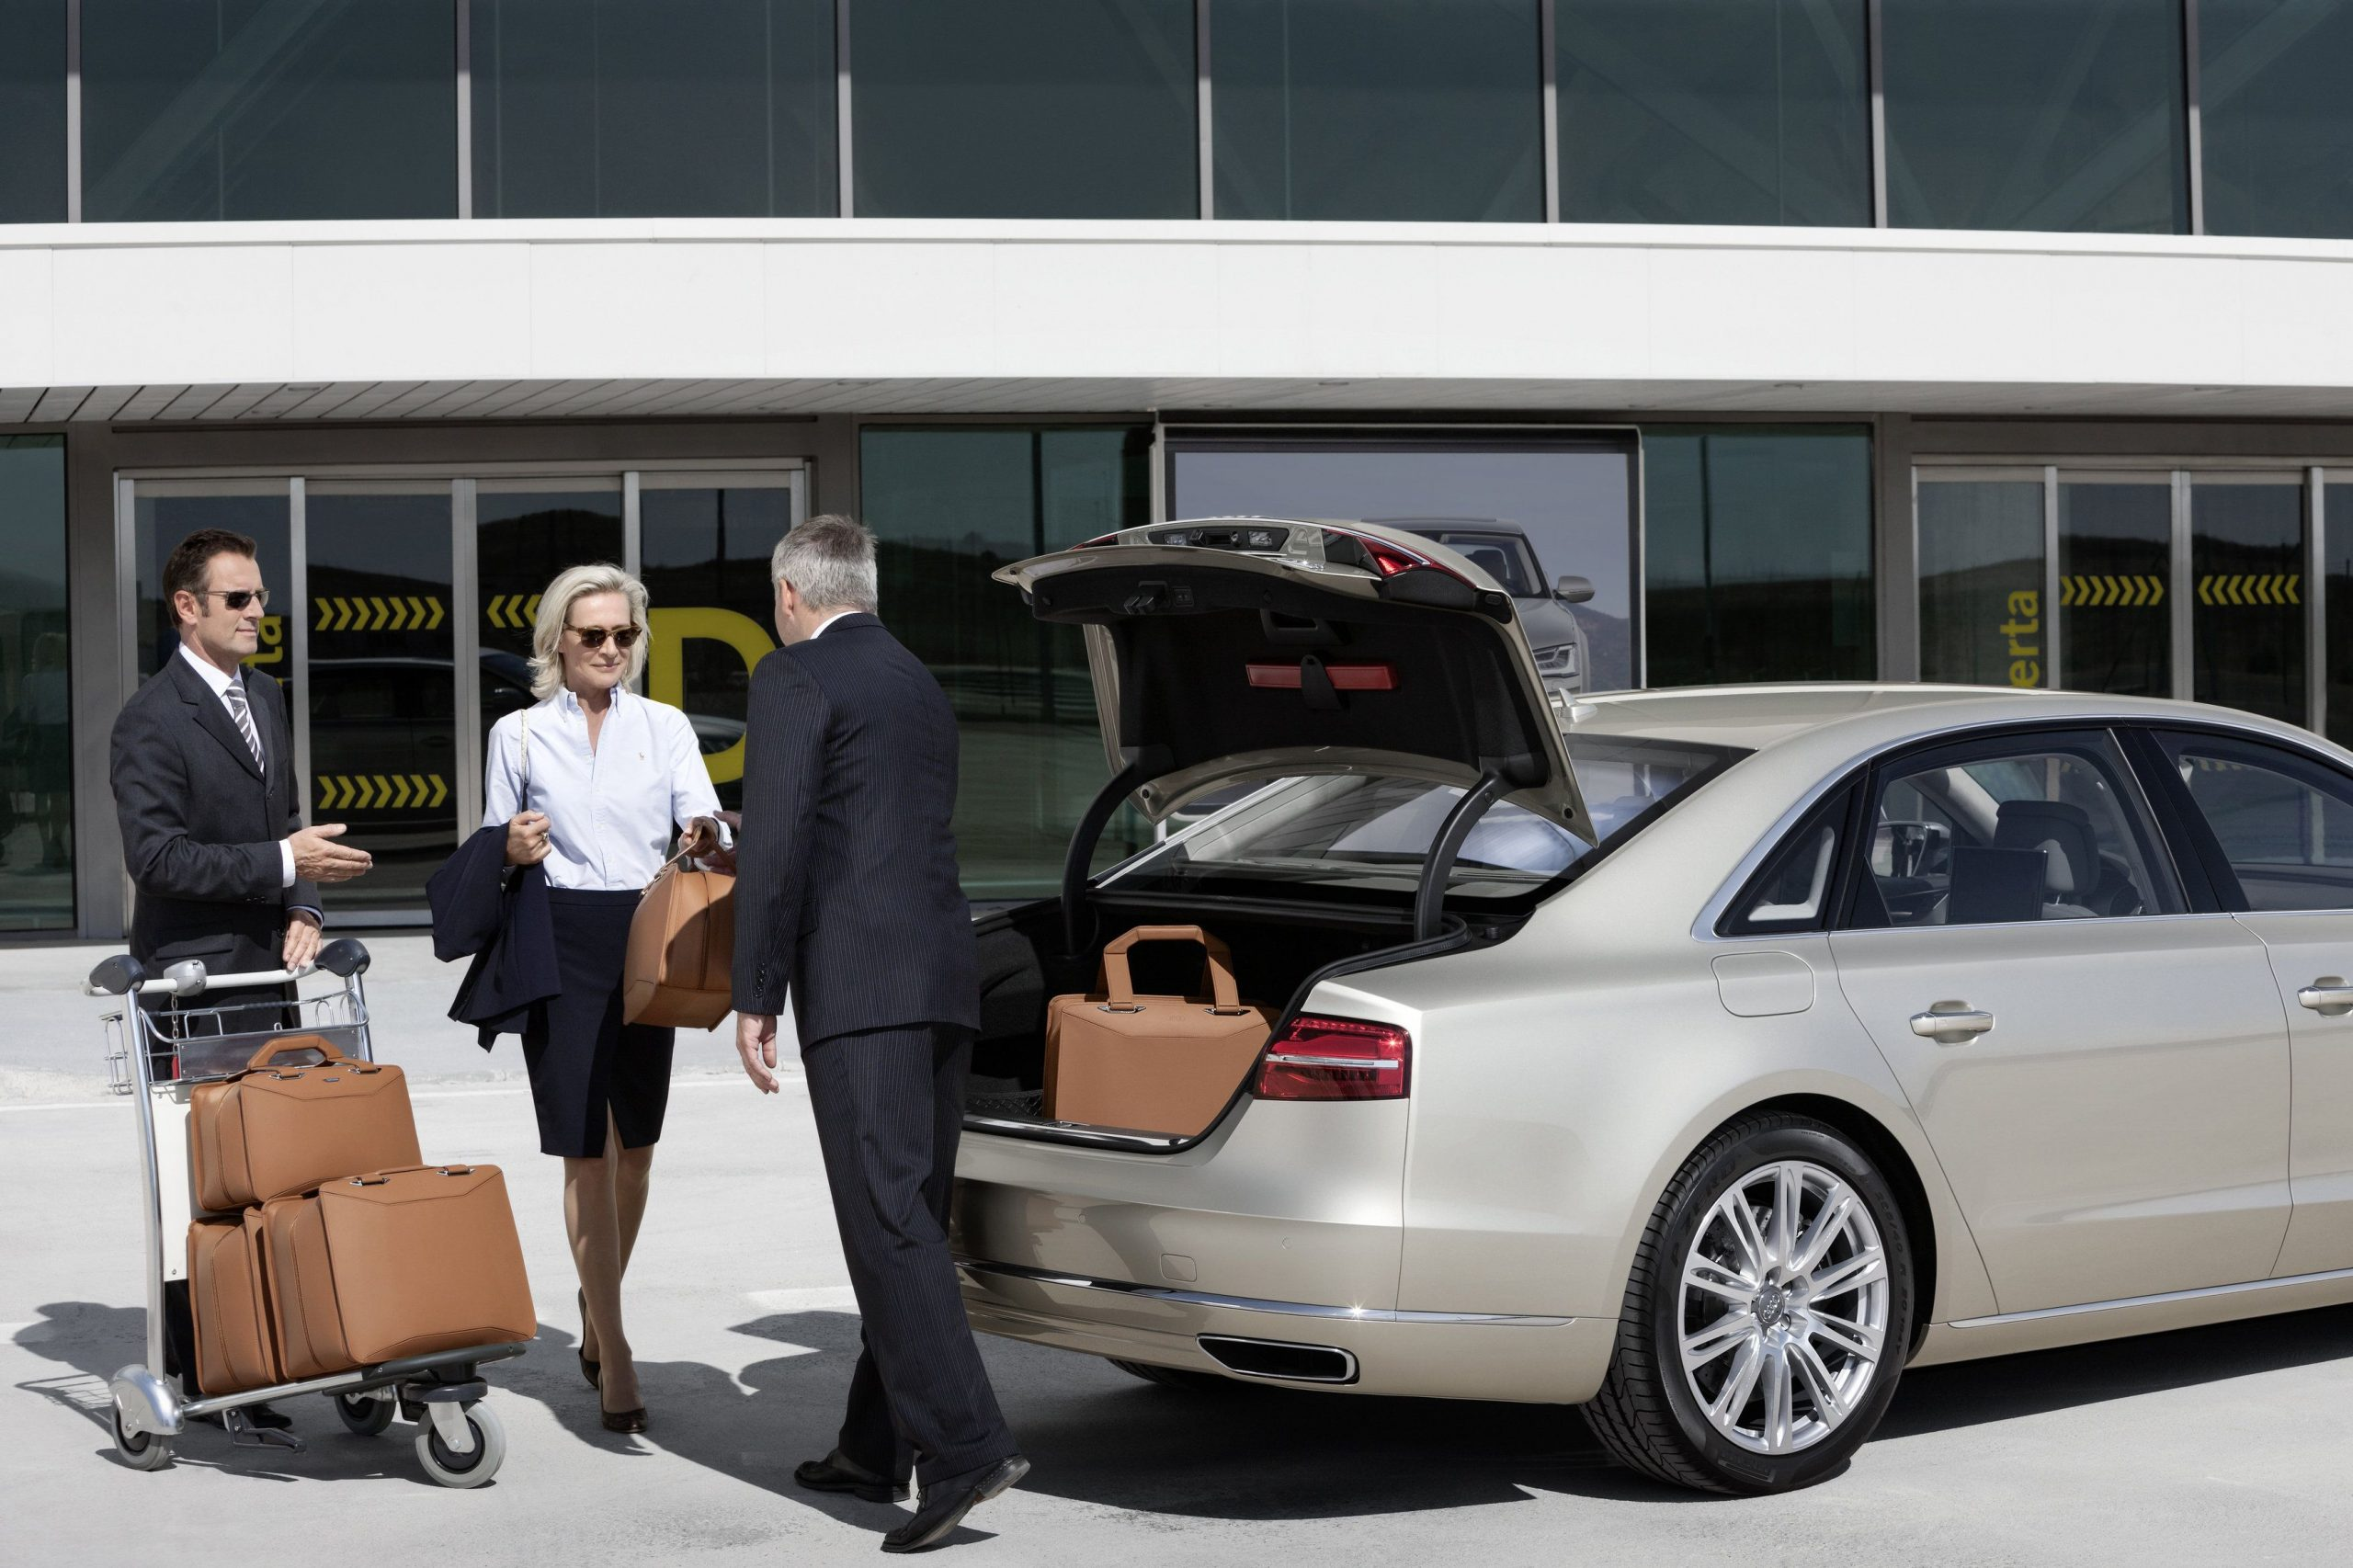 Check Out our Luxury Service Heathrow airport taxi